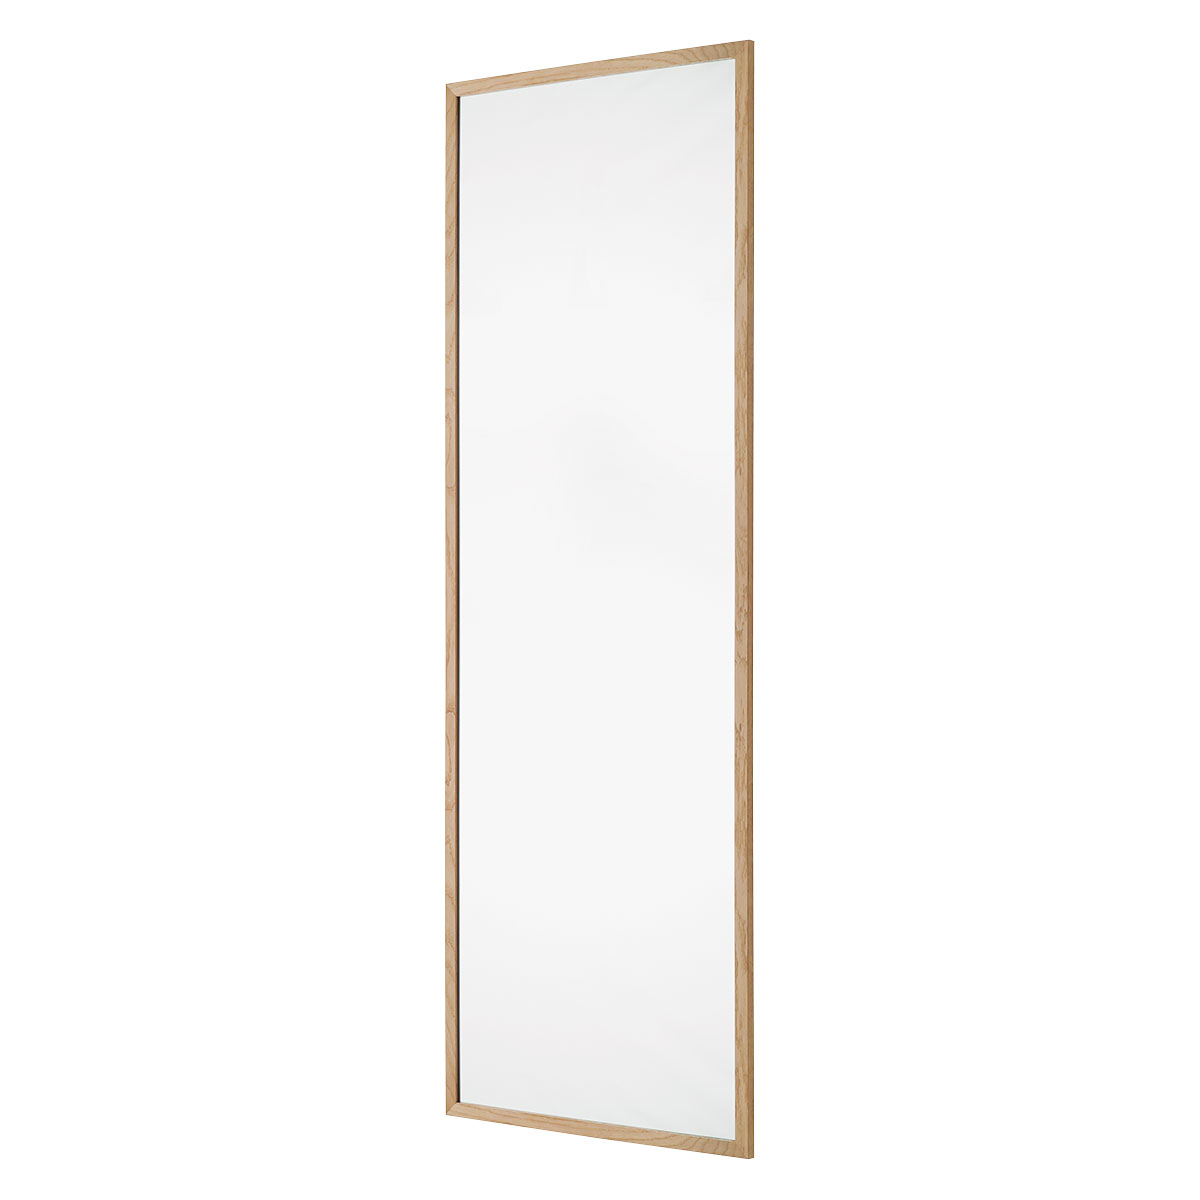 Full Length Wall Mirrors With Regard To 2019 Ontario 45 X 135Cm Oak Full Length Wall Mirror (View 10 of 20)